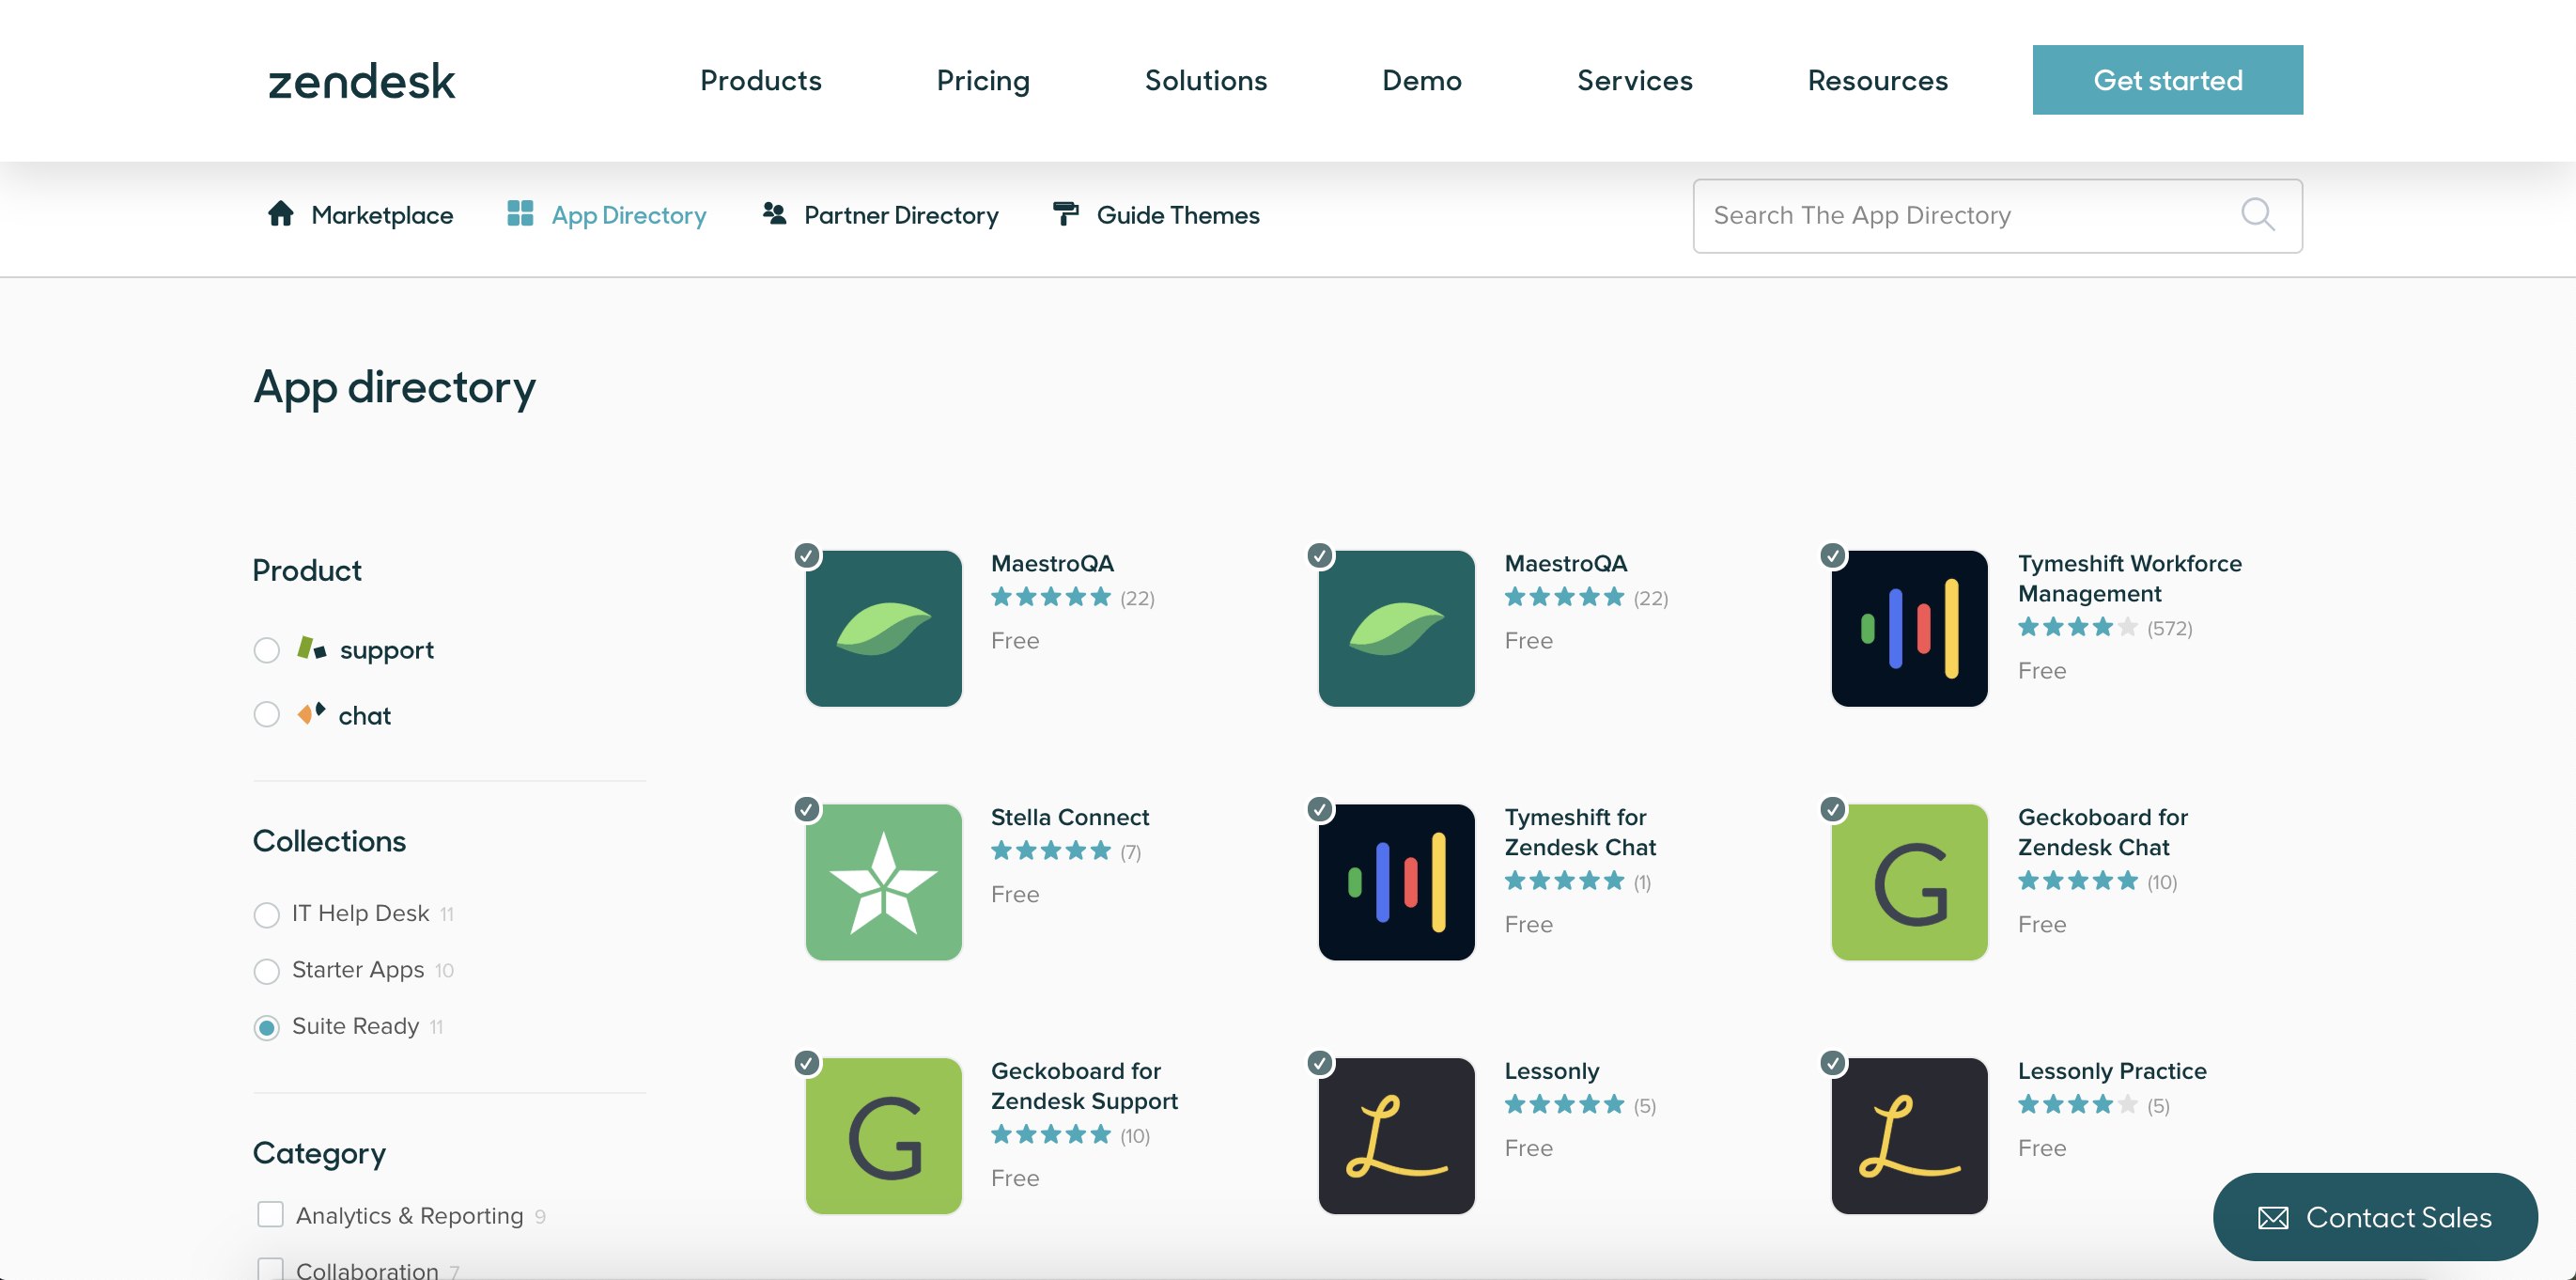 What's New at Zendesk - See Our Product Updates